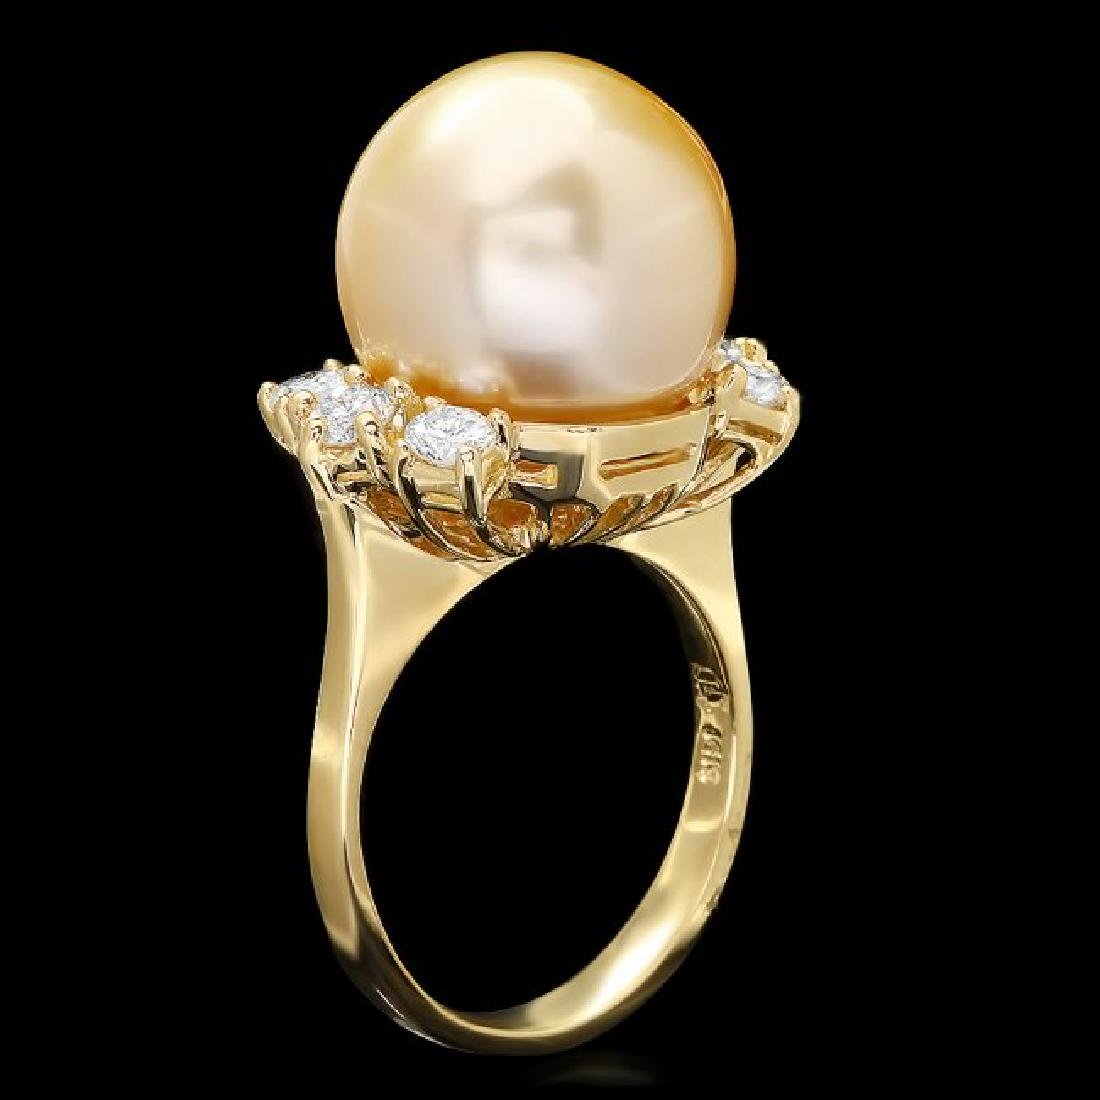 14k Gold 14 X 14mm Pearl 0.80ct Diamond Ring - 2